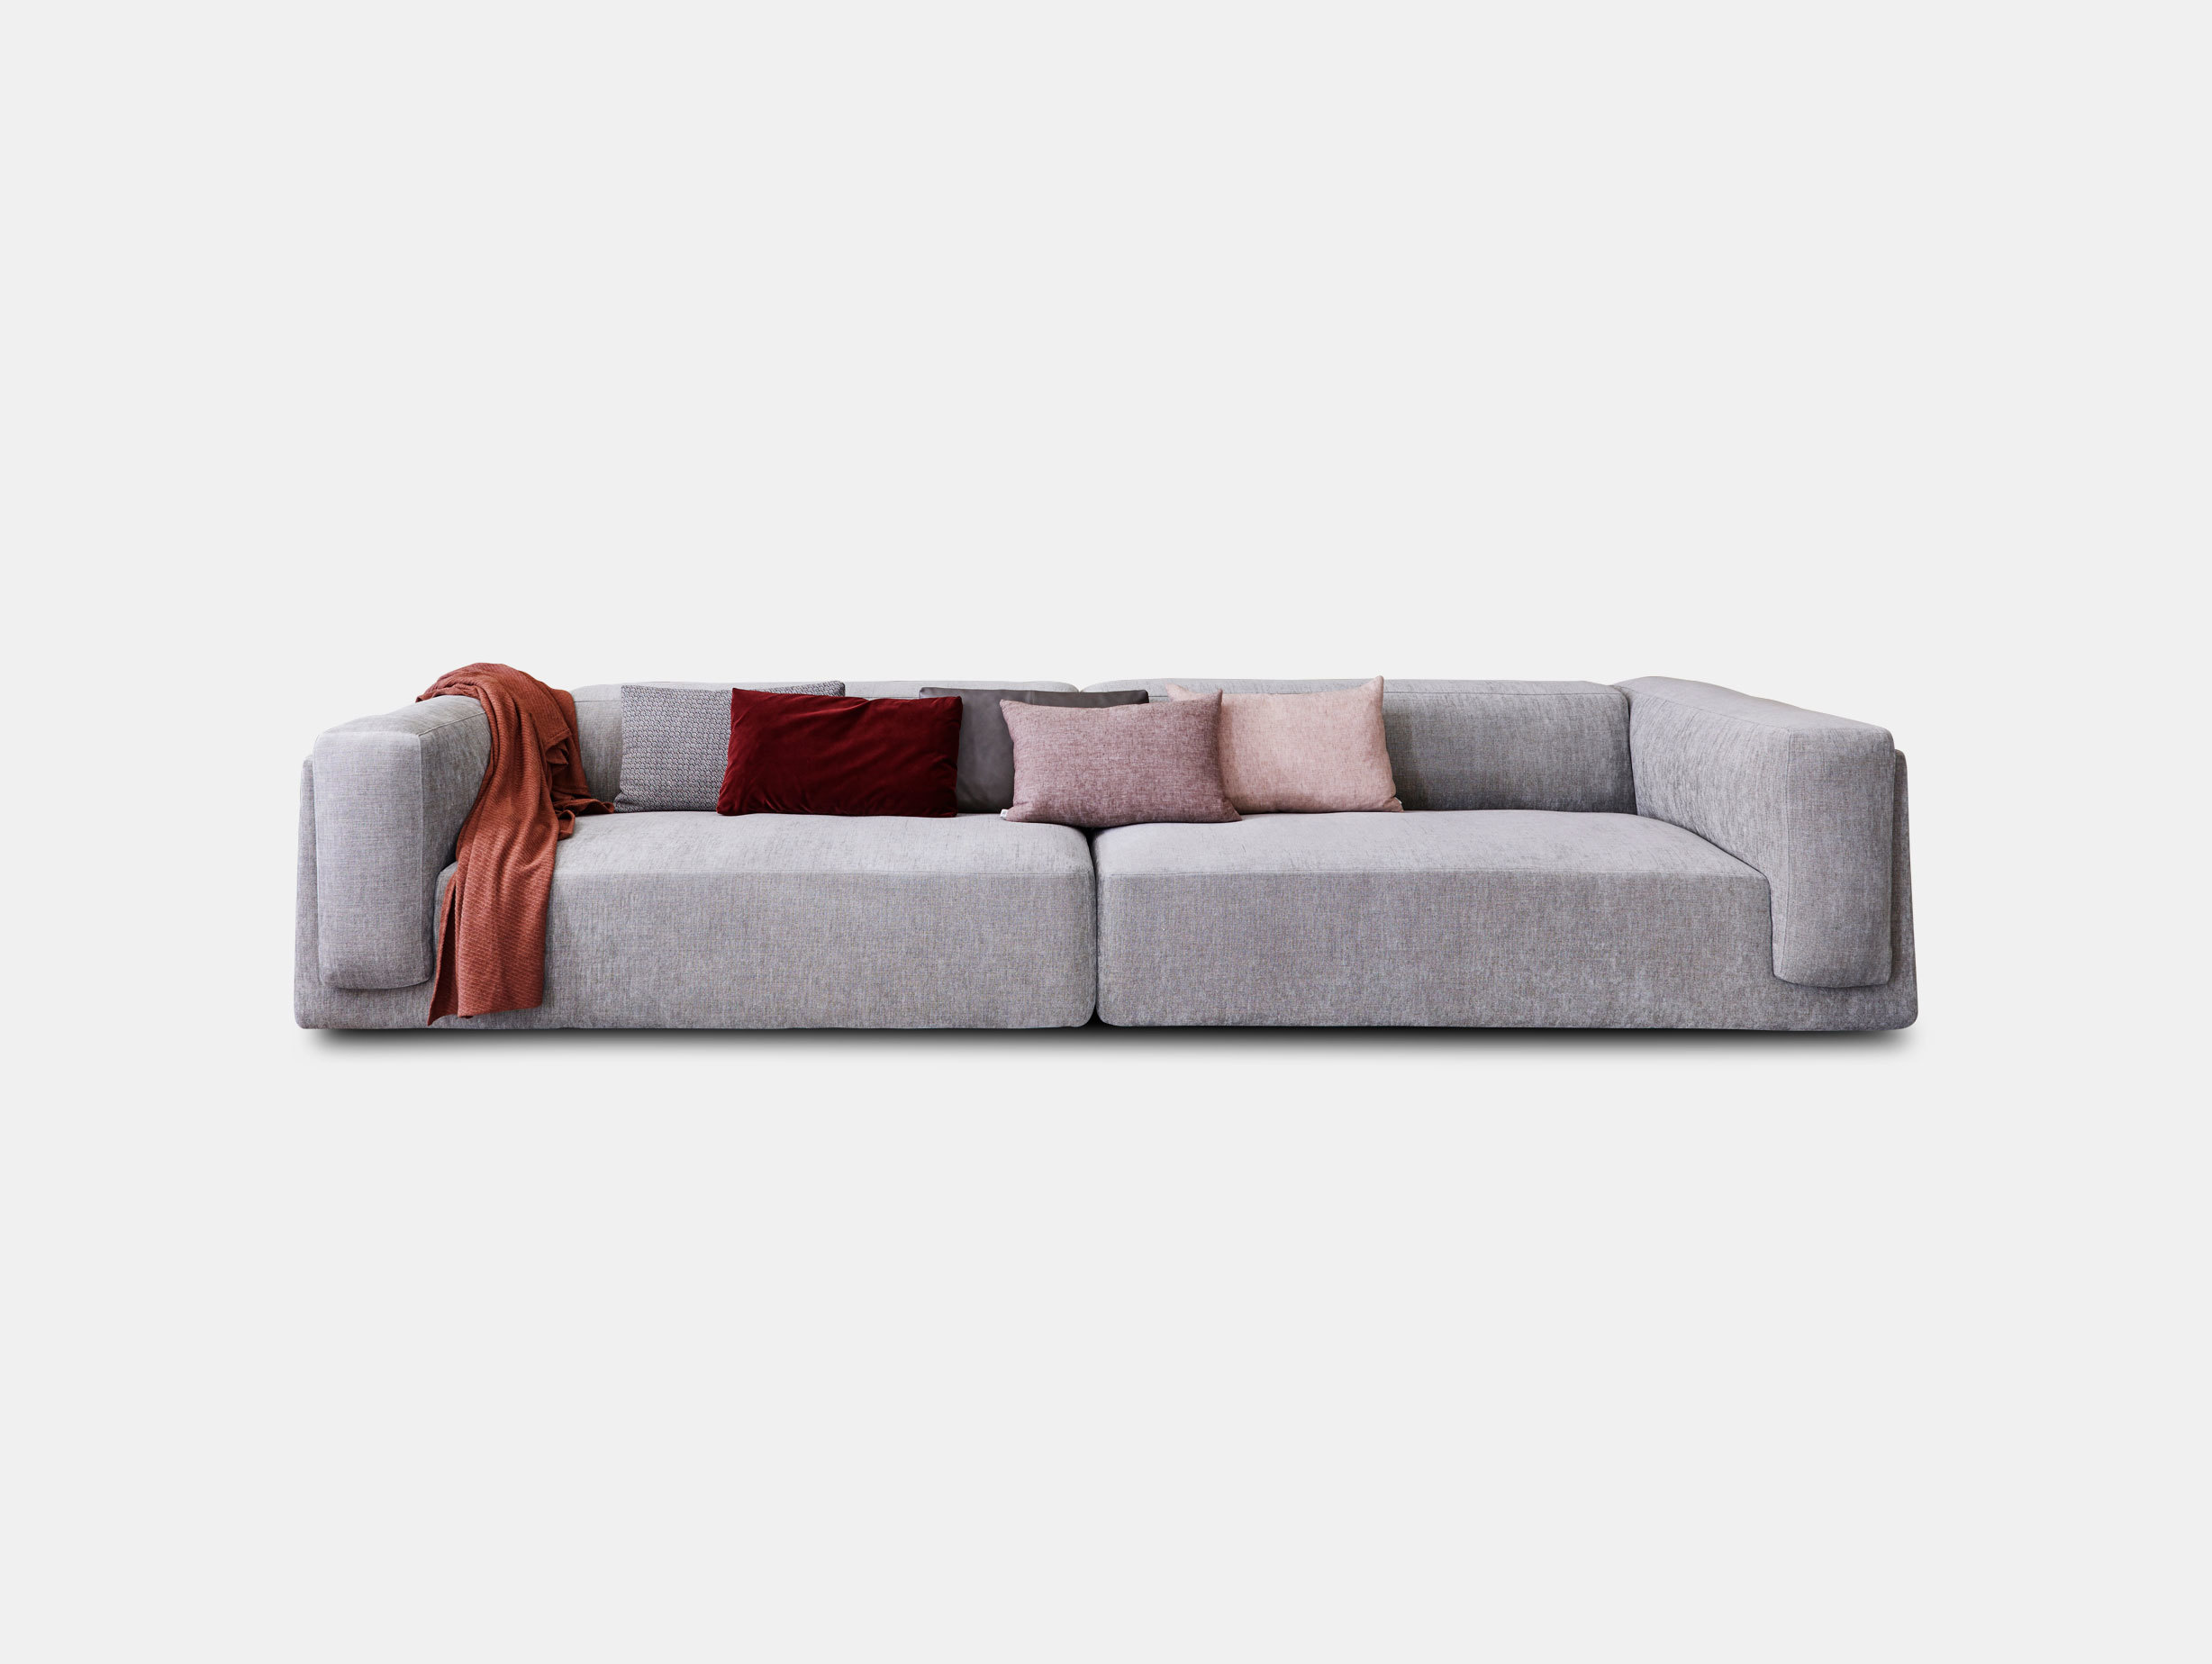 Edge Sofa image 1